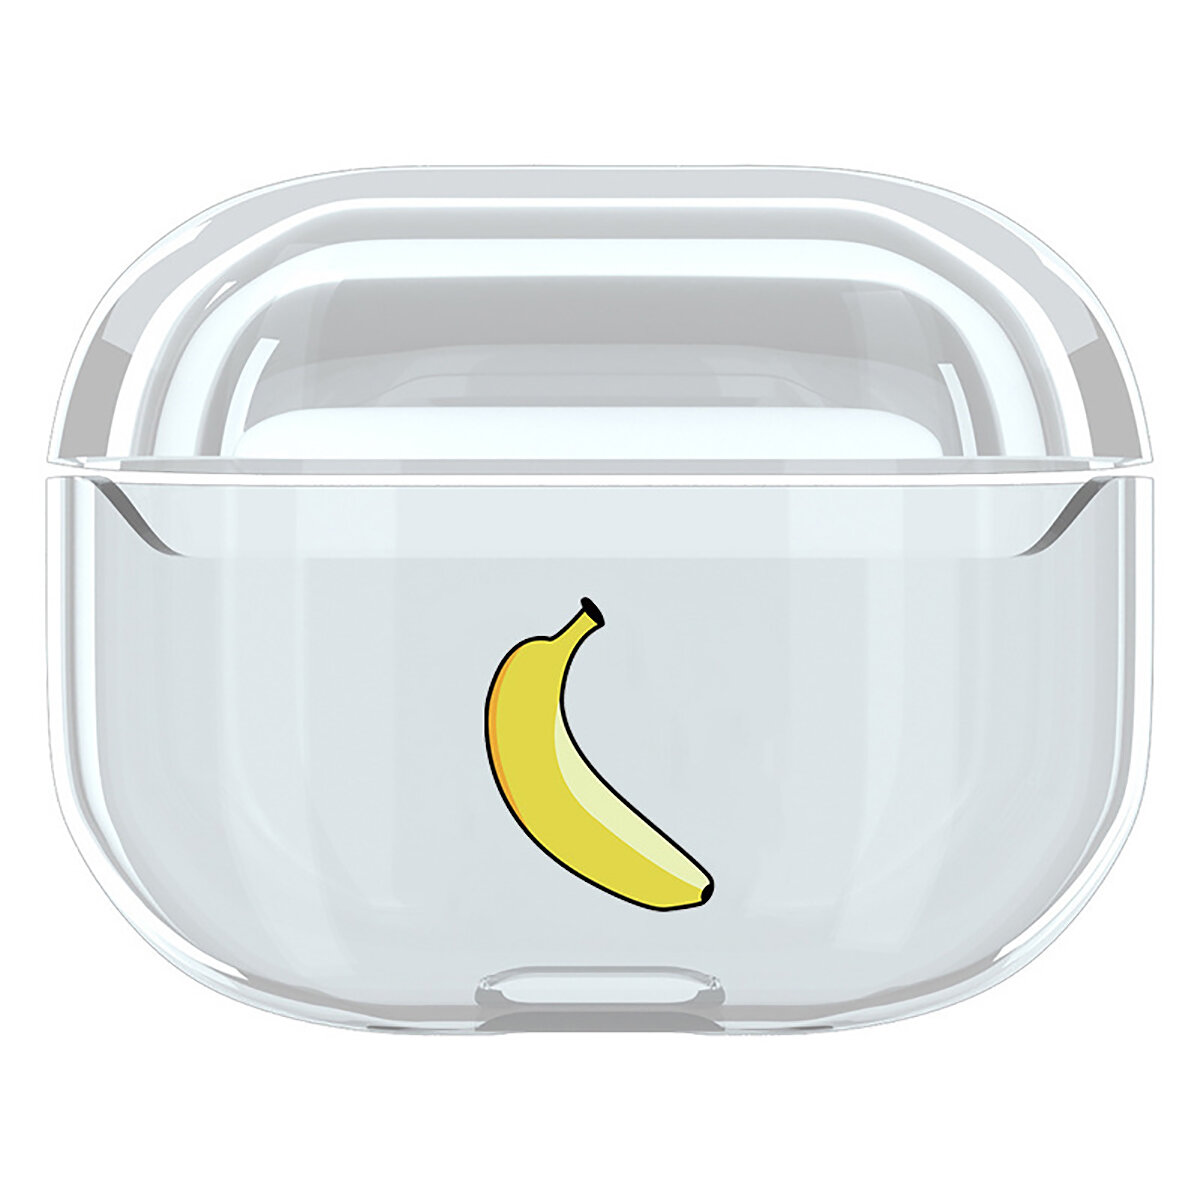 Cute Cartoon Patrón Clear Hard Funda protectora a prueba de golpes Caso Auricular Storage Caso Para Apple para AirPods 3